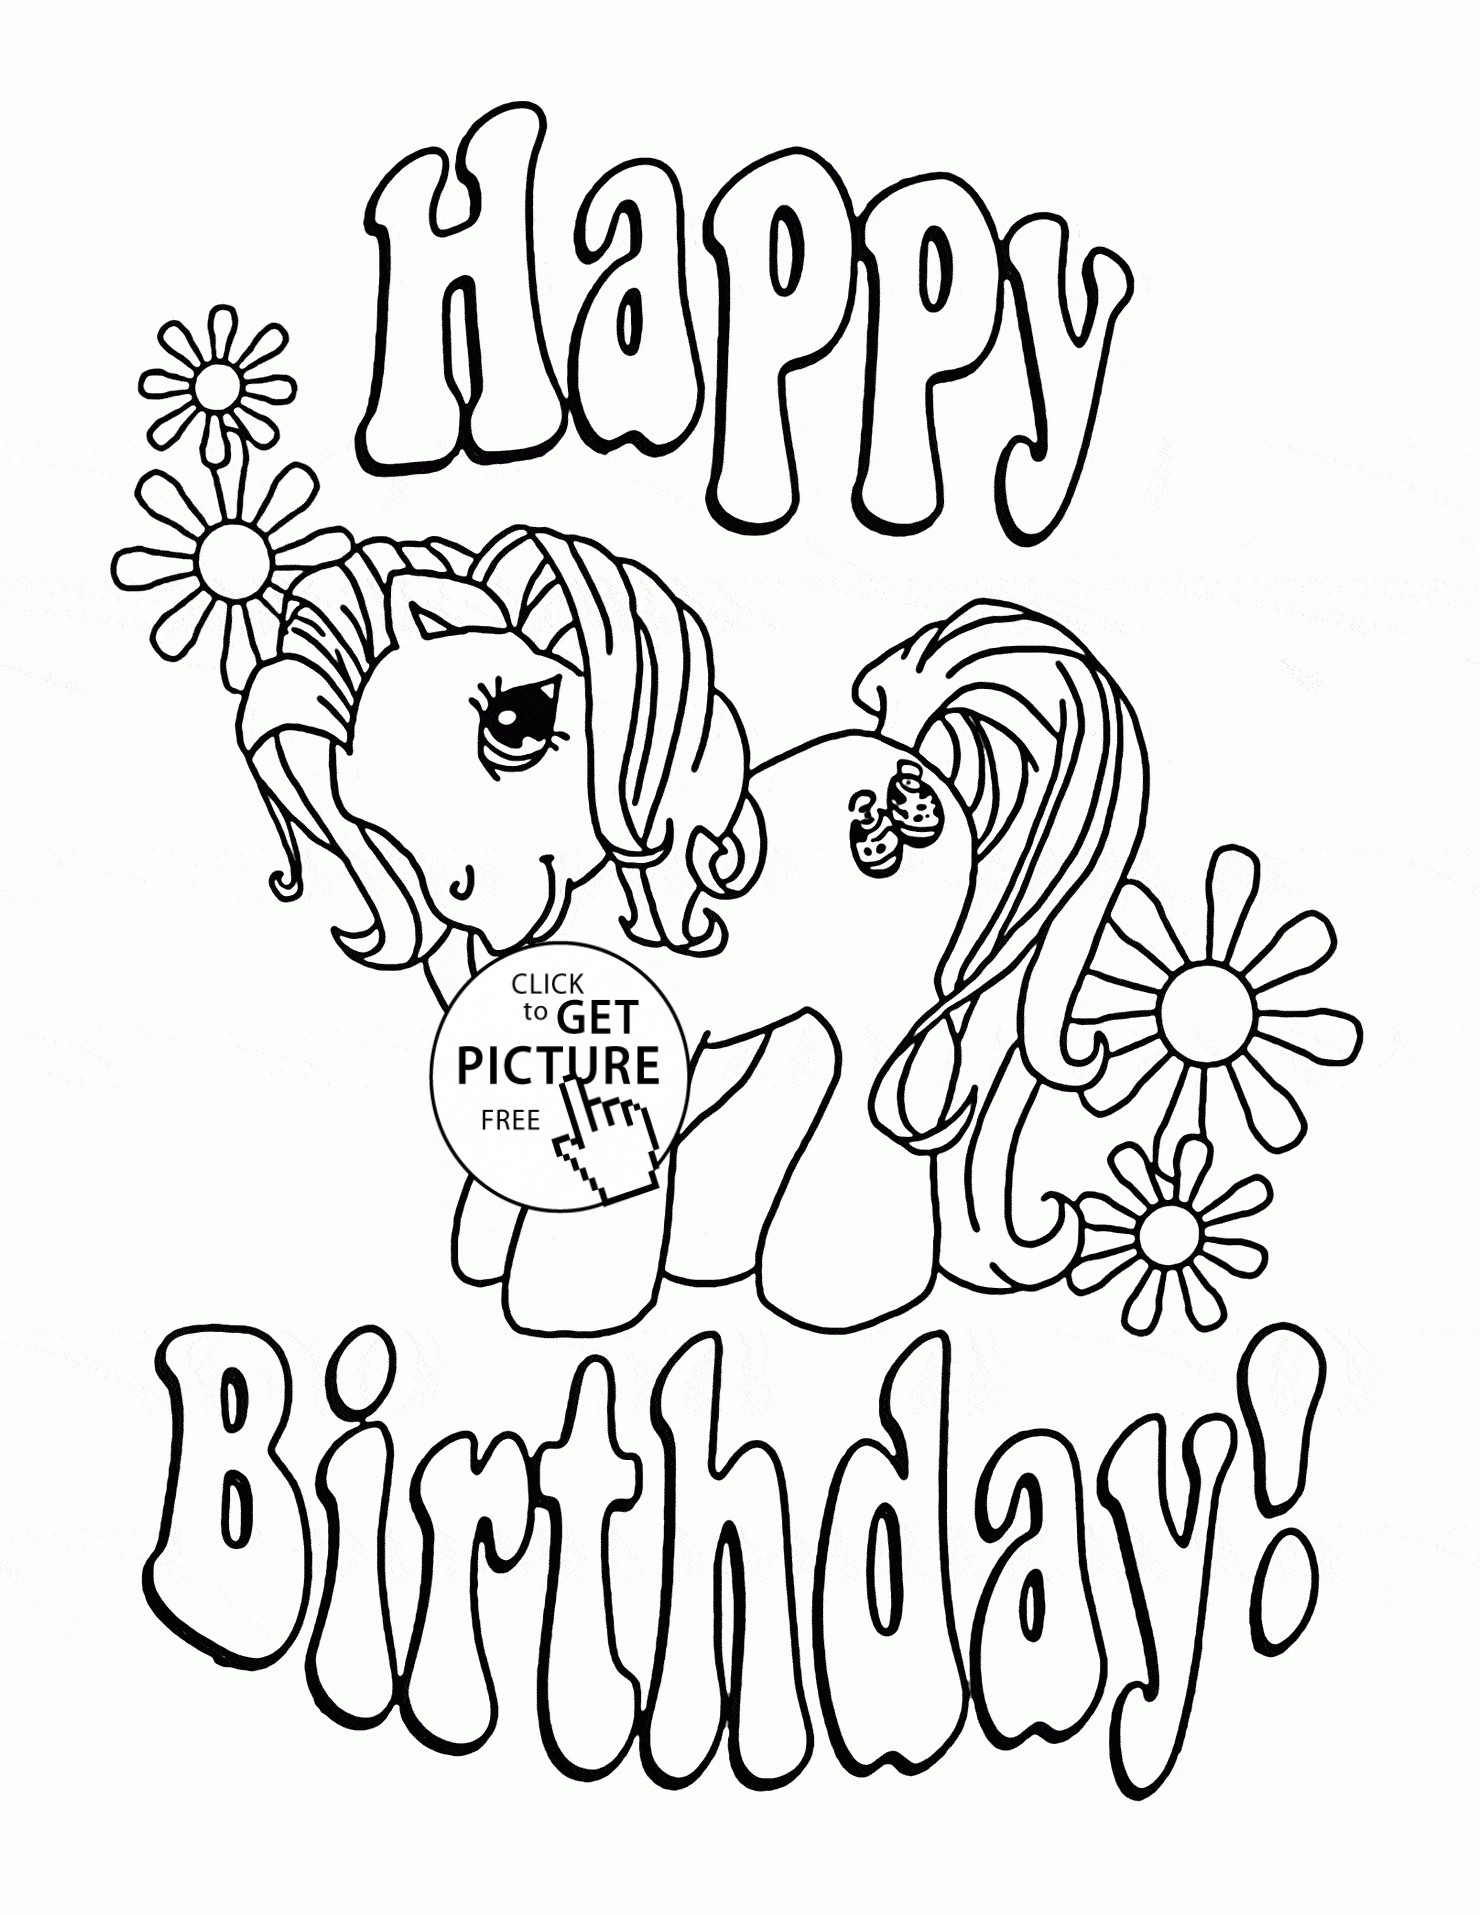 Happy Birthday Mommy Coloring Pages  Gallery 15q - Free For Children